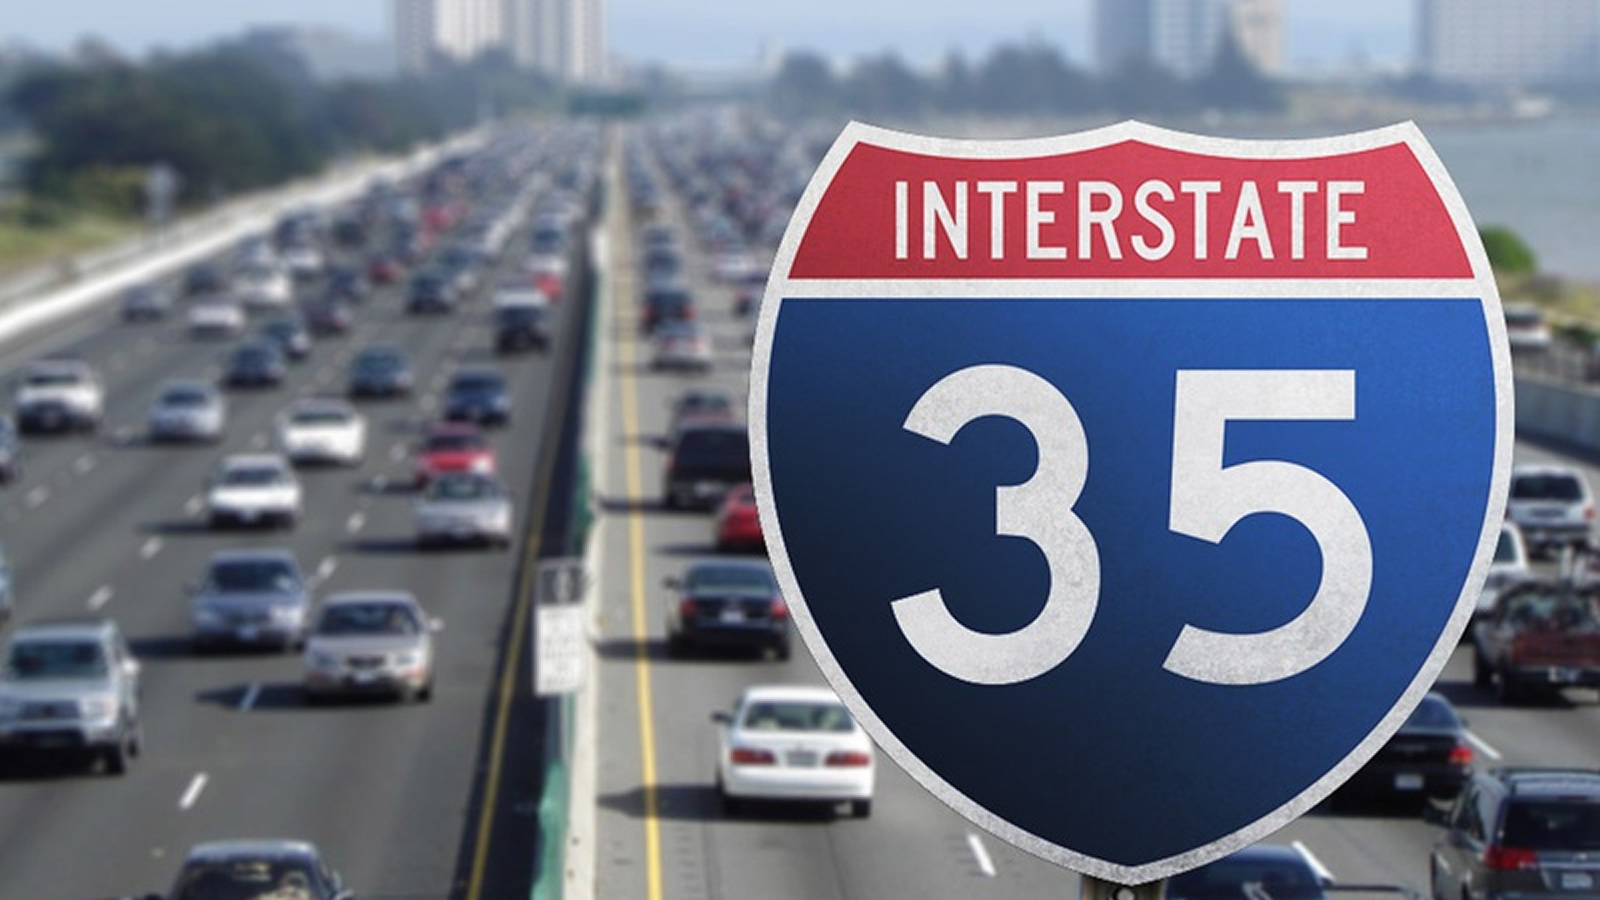 <h3>Interstate 35 Expansion, Texas</h3><h4>Cost: $8.1 billion</h4><p>It's a boondoggle because: Despite enormous state highway debt, and the growing need for transit and complete streets to create more compact and connected neighborhoods, policymakers have proposed to expand I-35 right through the middle of Austin.</p><em>Public Domain</em>